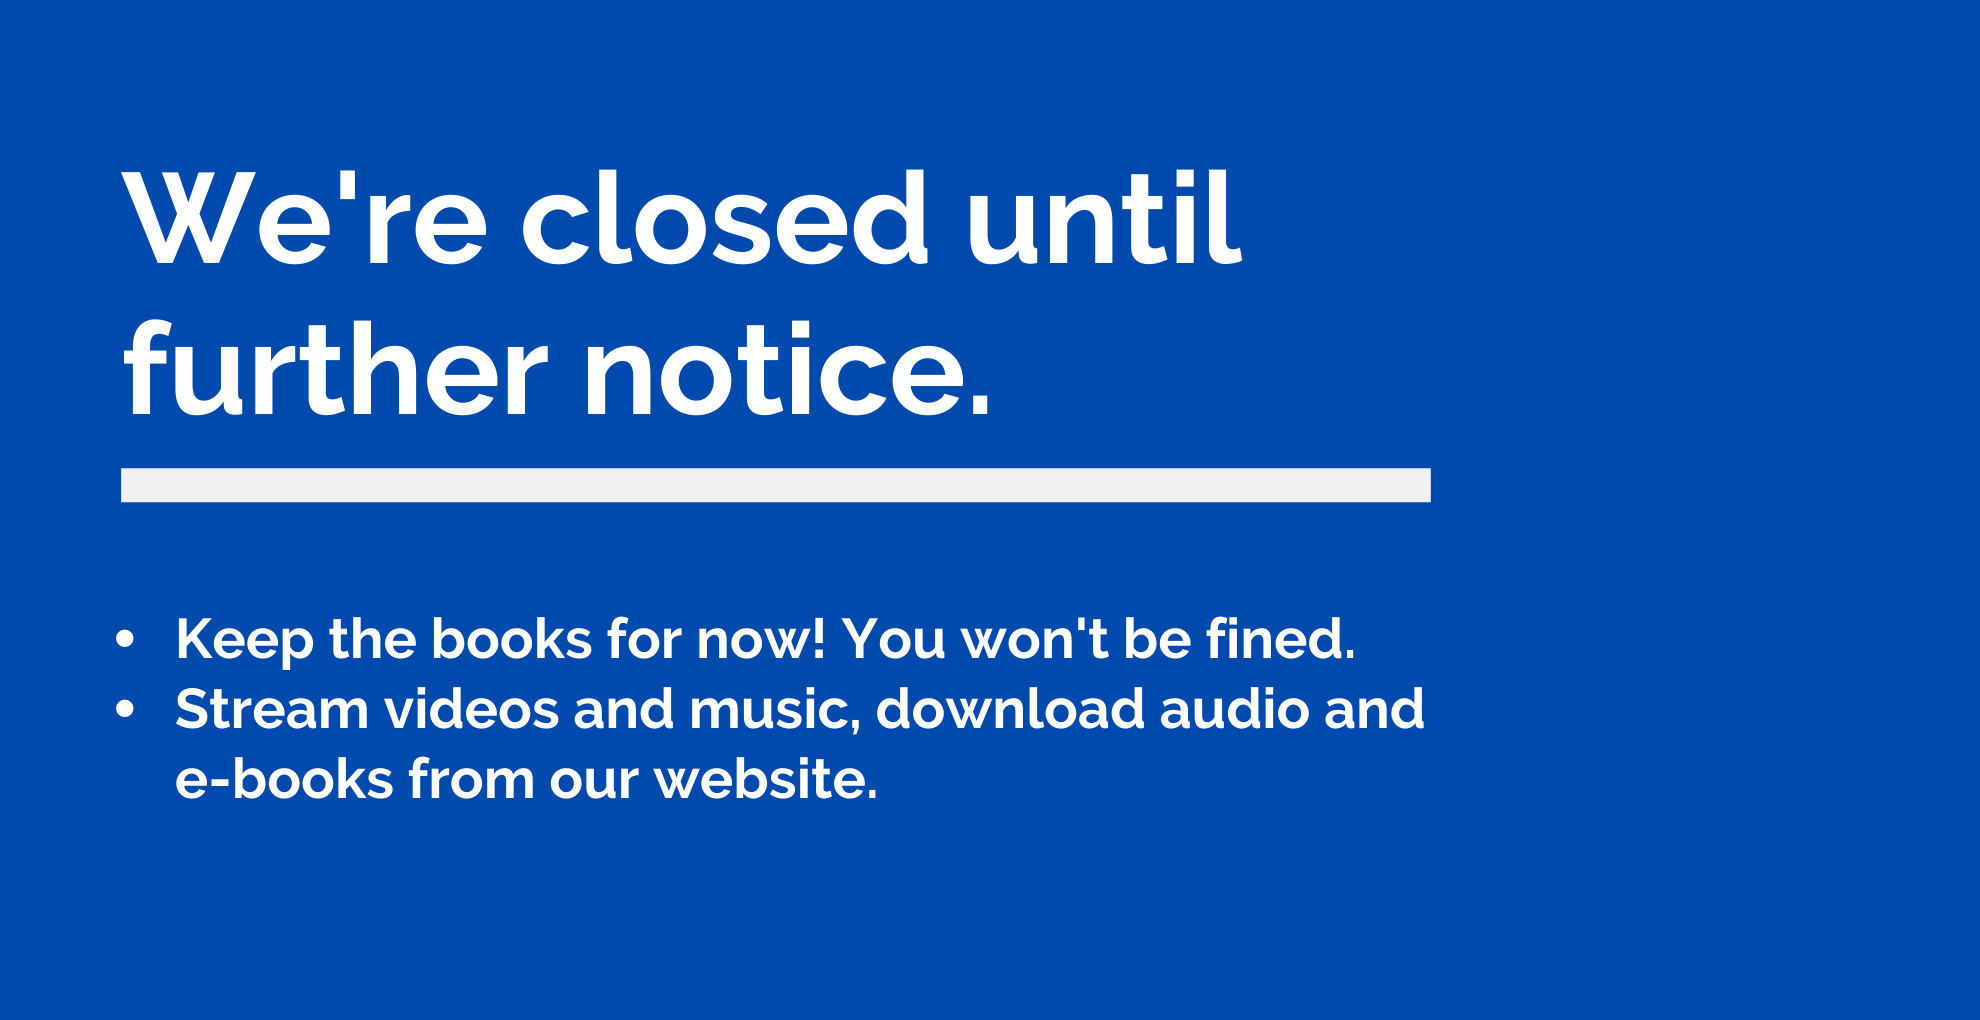 We're closed until further notice.